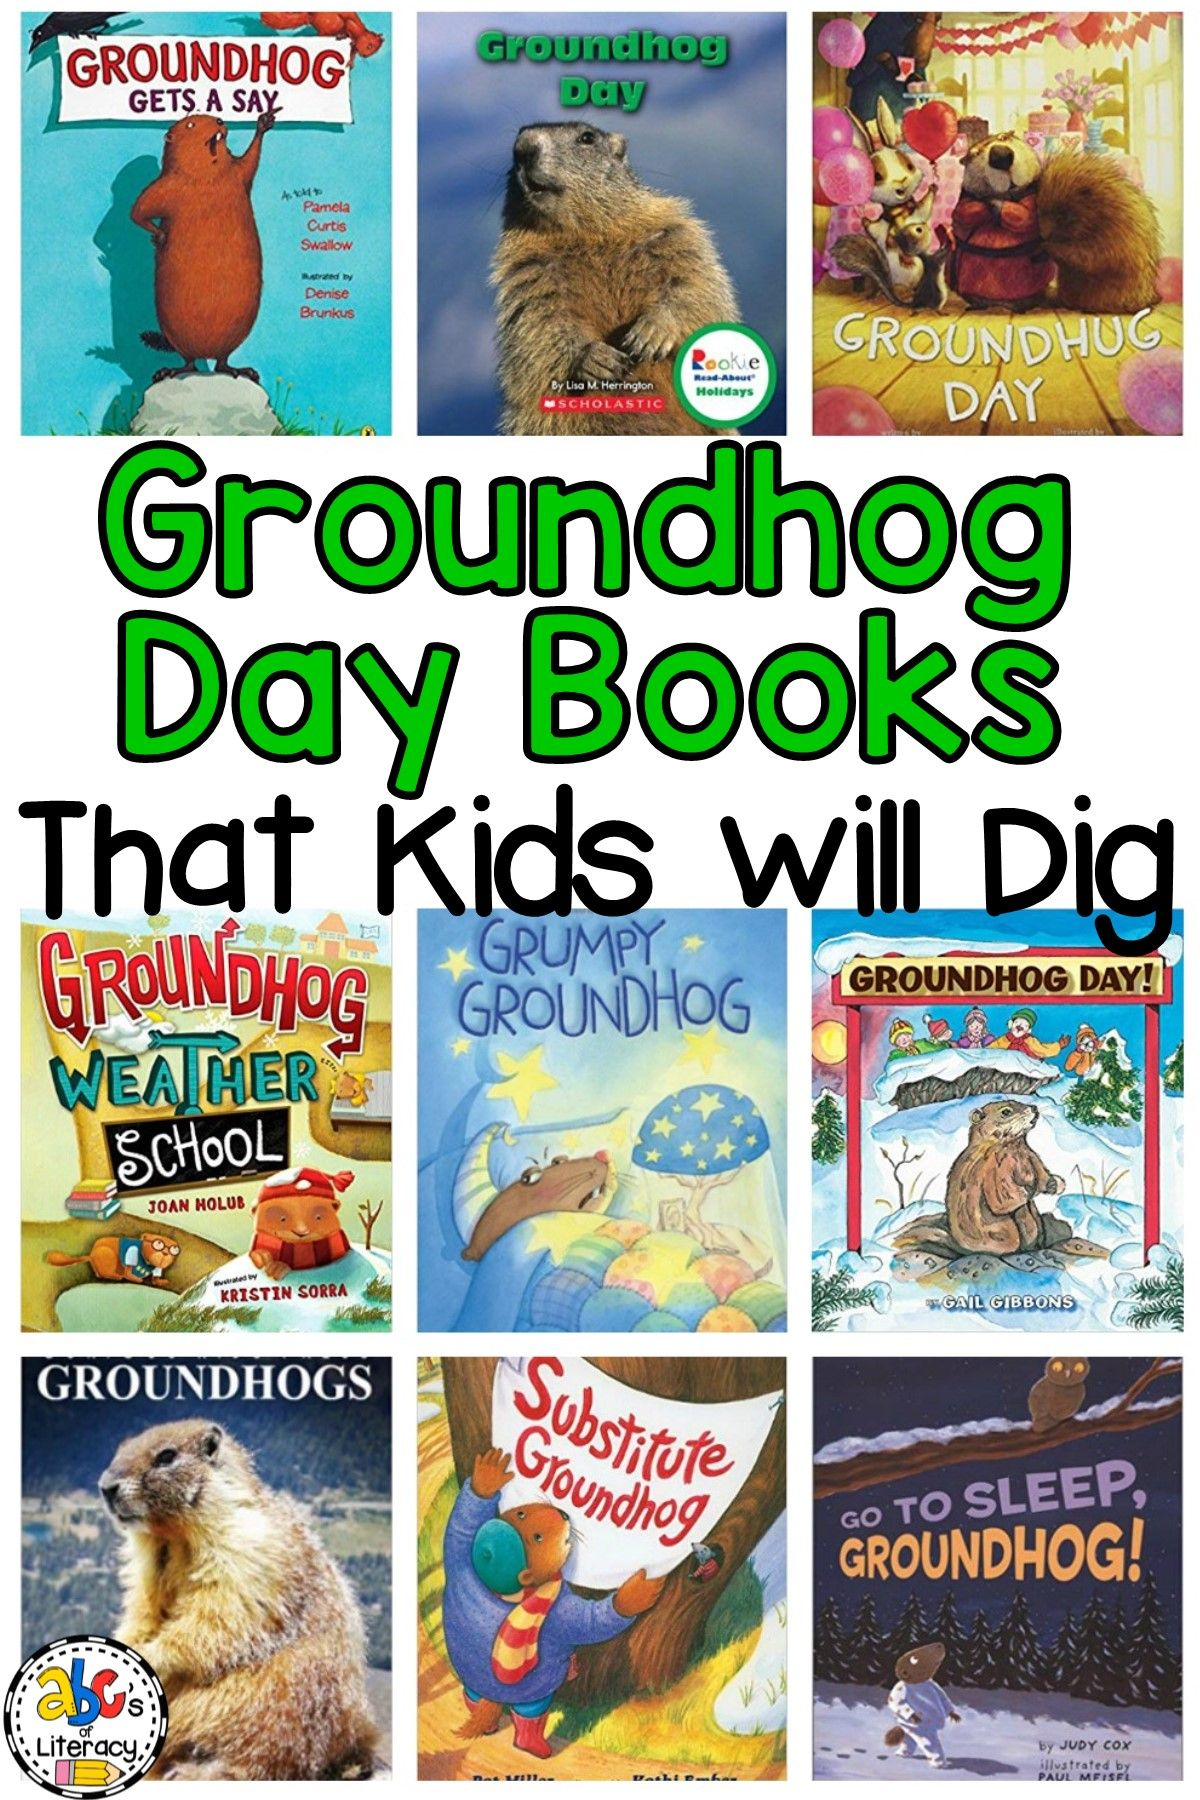 Groundhog Day Books That Kids Will Dig For Groundhog S Day